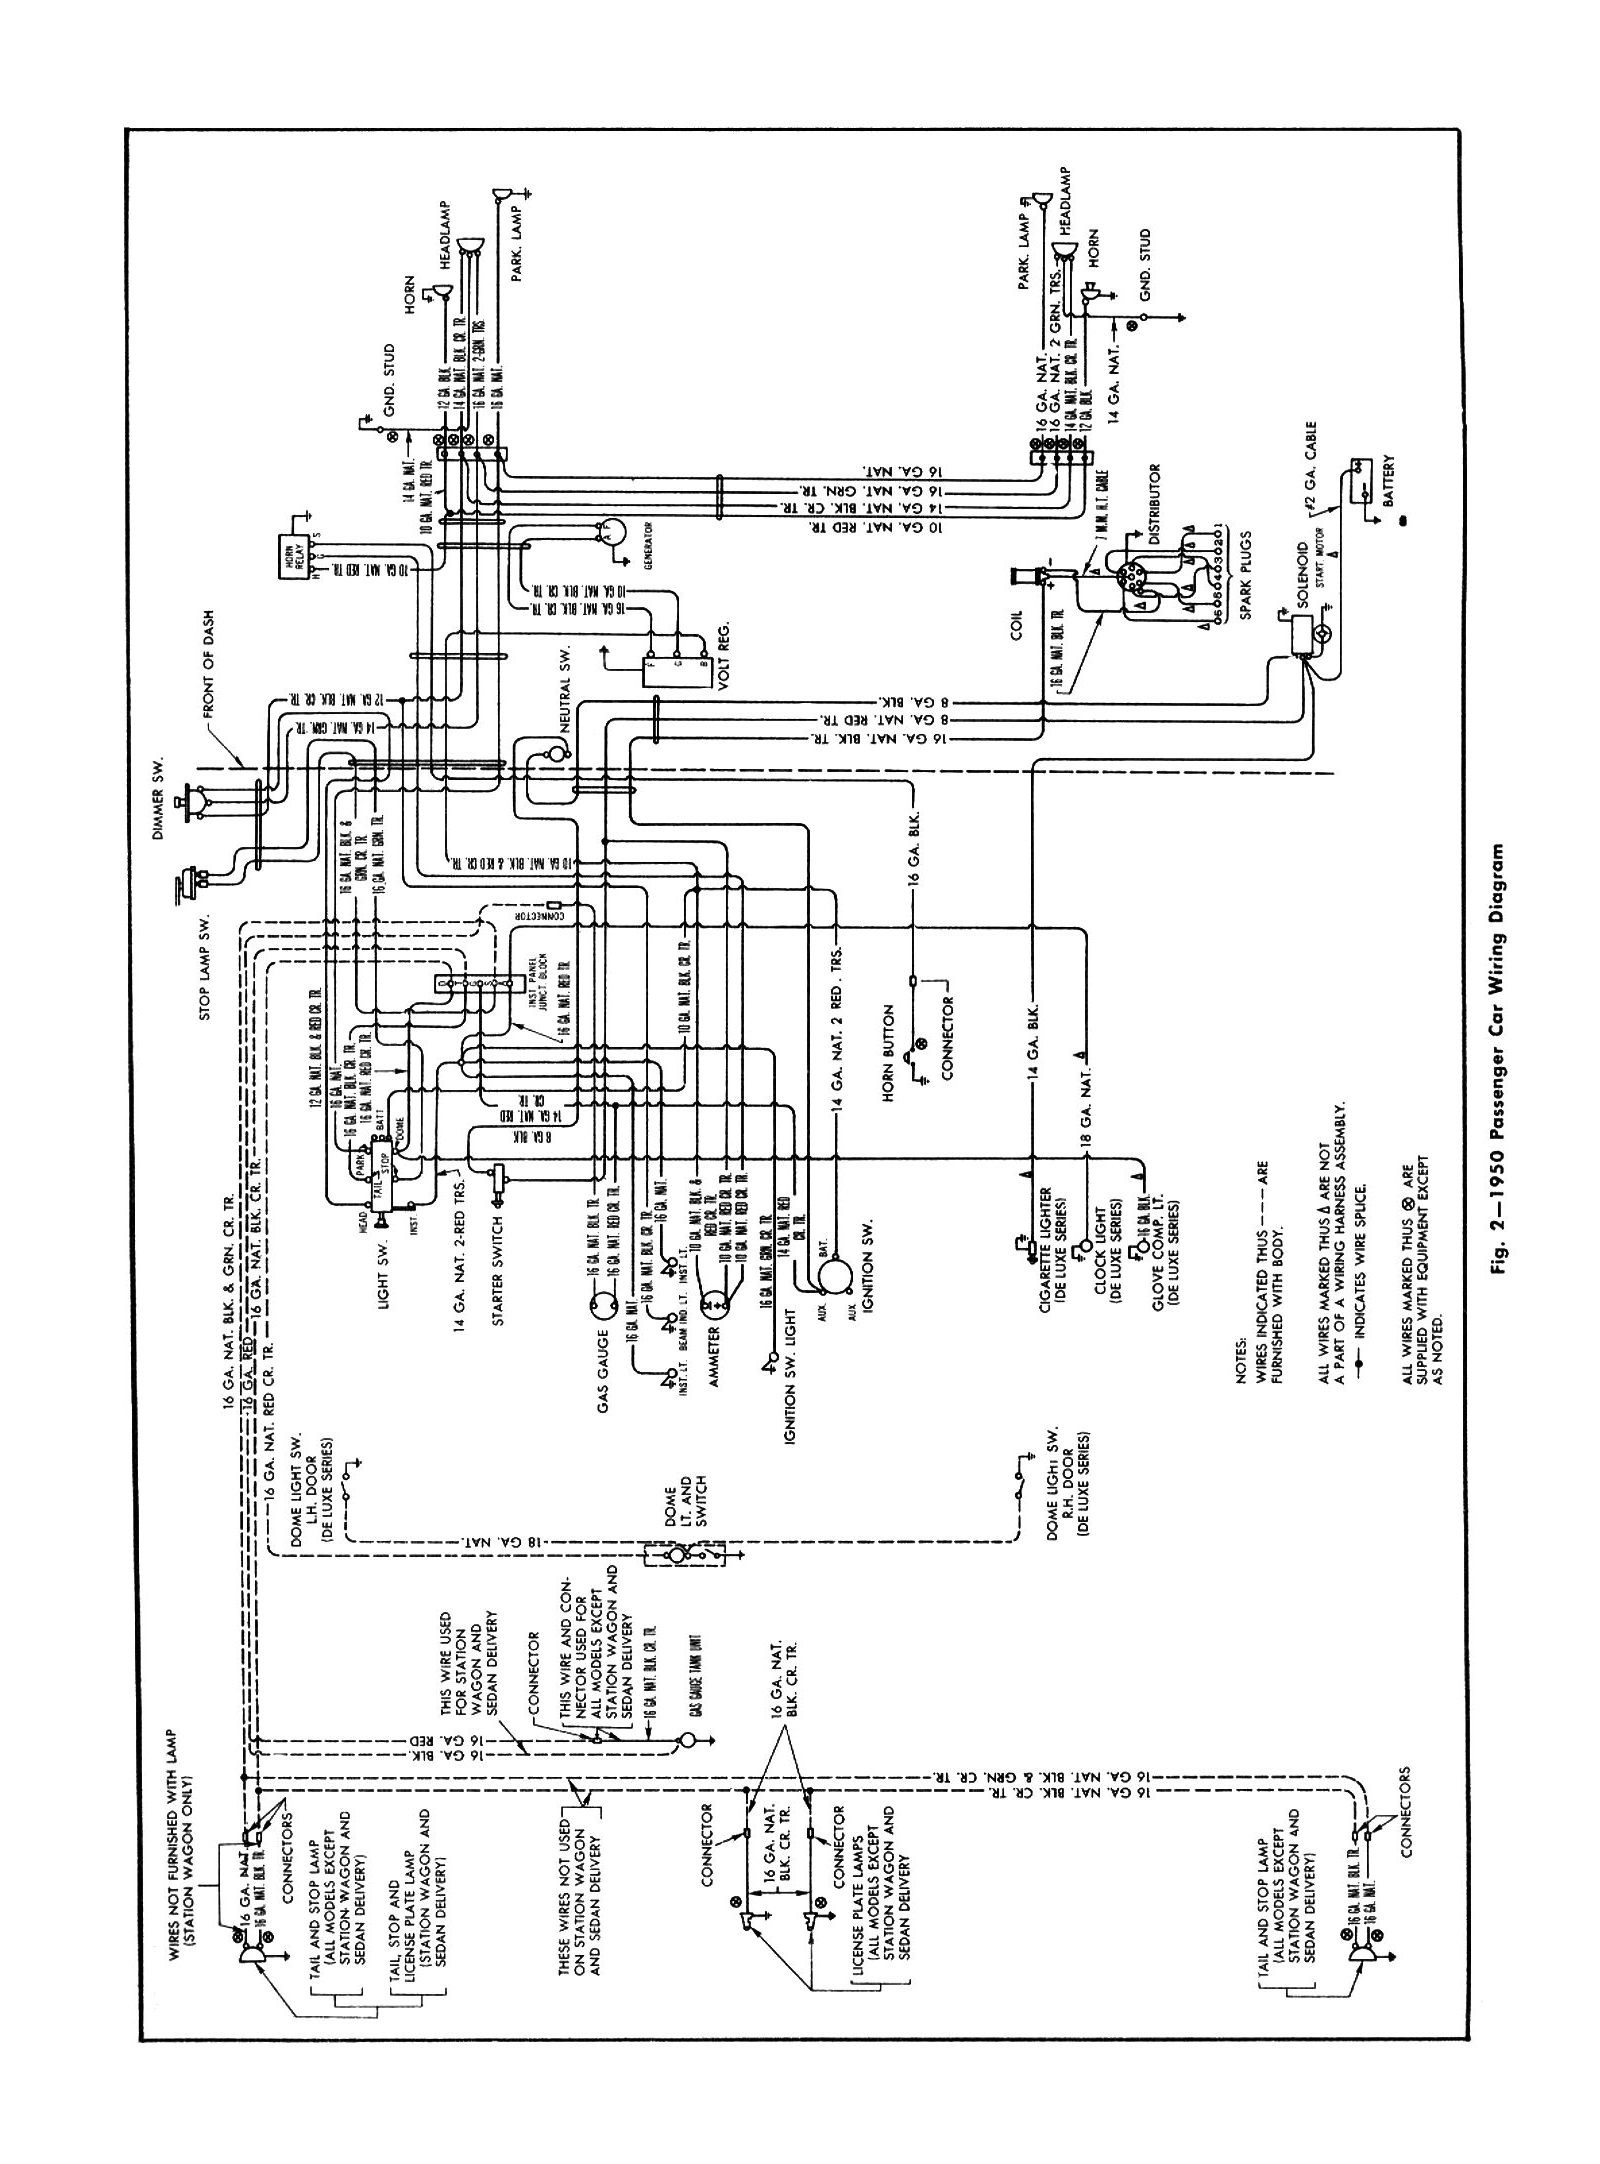 hight resolution of ignition wiring on a 1950 chevy wiring diagram third level chevy dome light wiring 1973 chevy ignition wiring